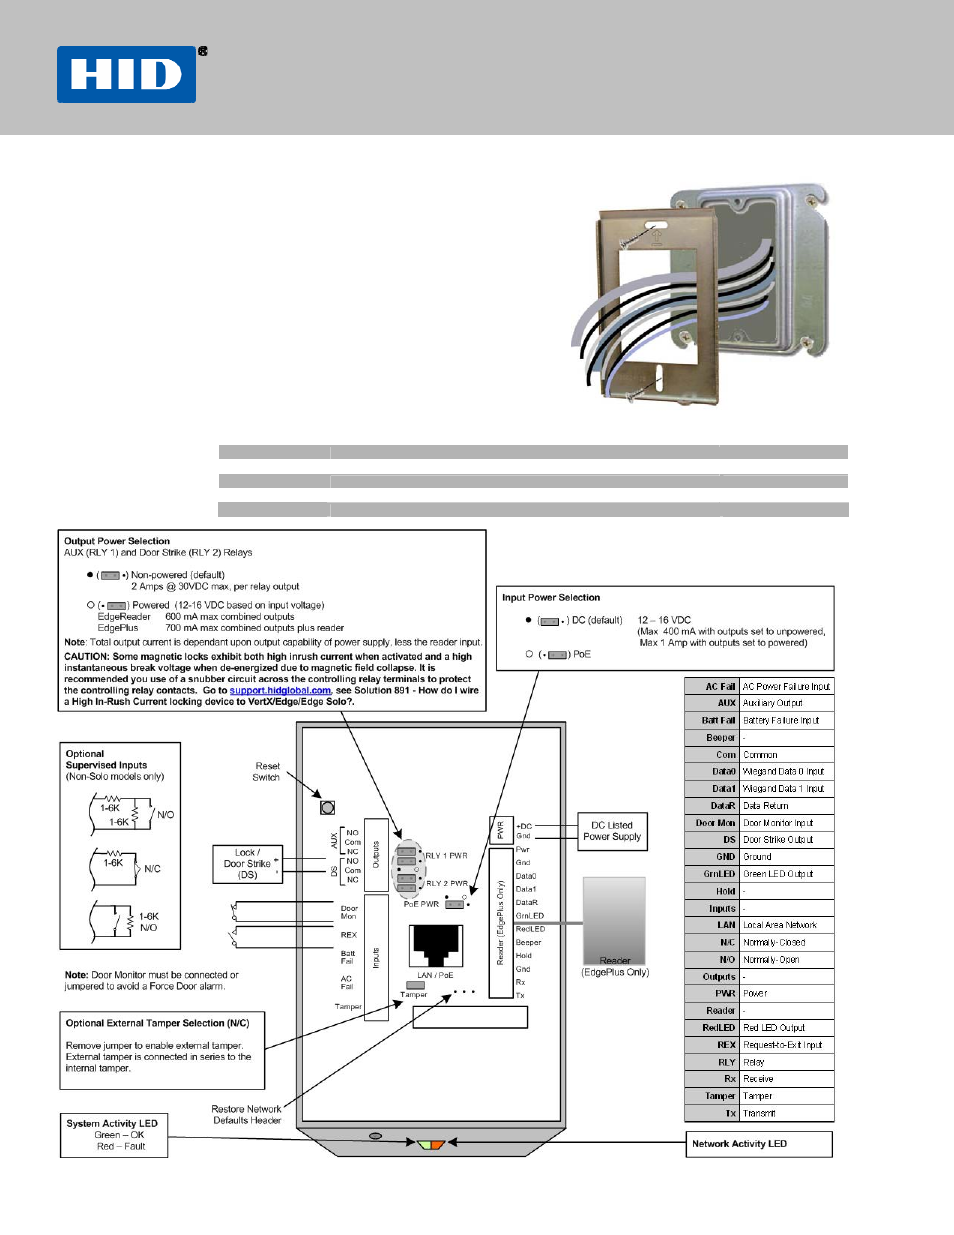 Hid Edge Reader Installation Guide User Manual